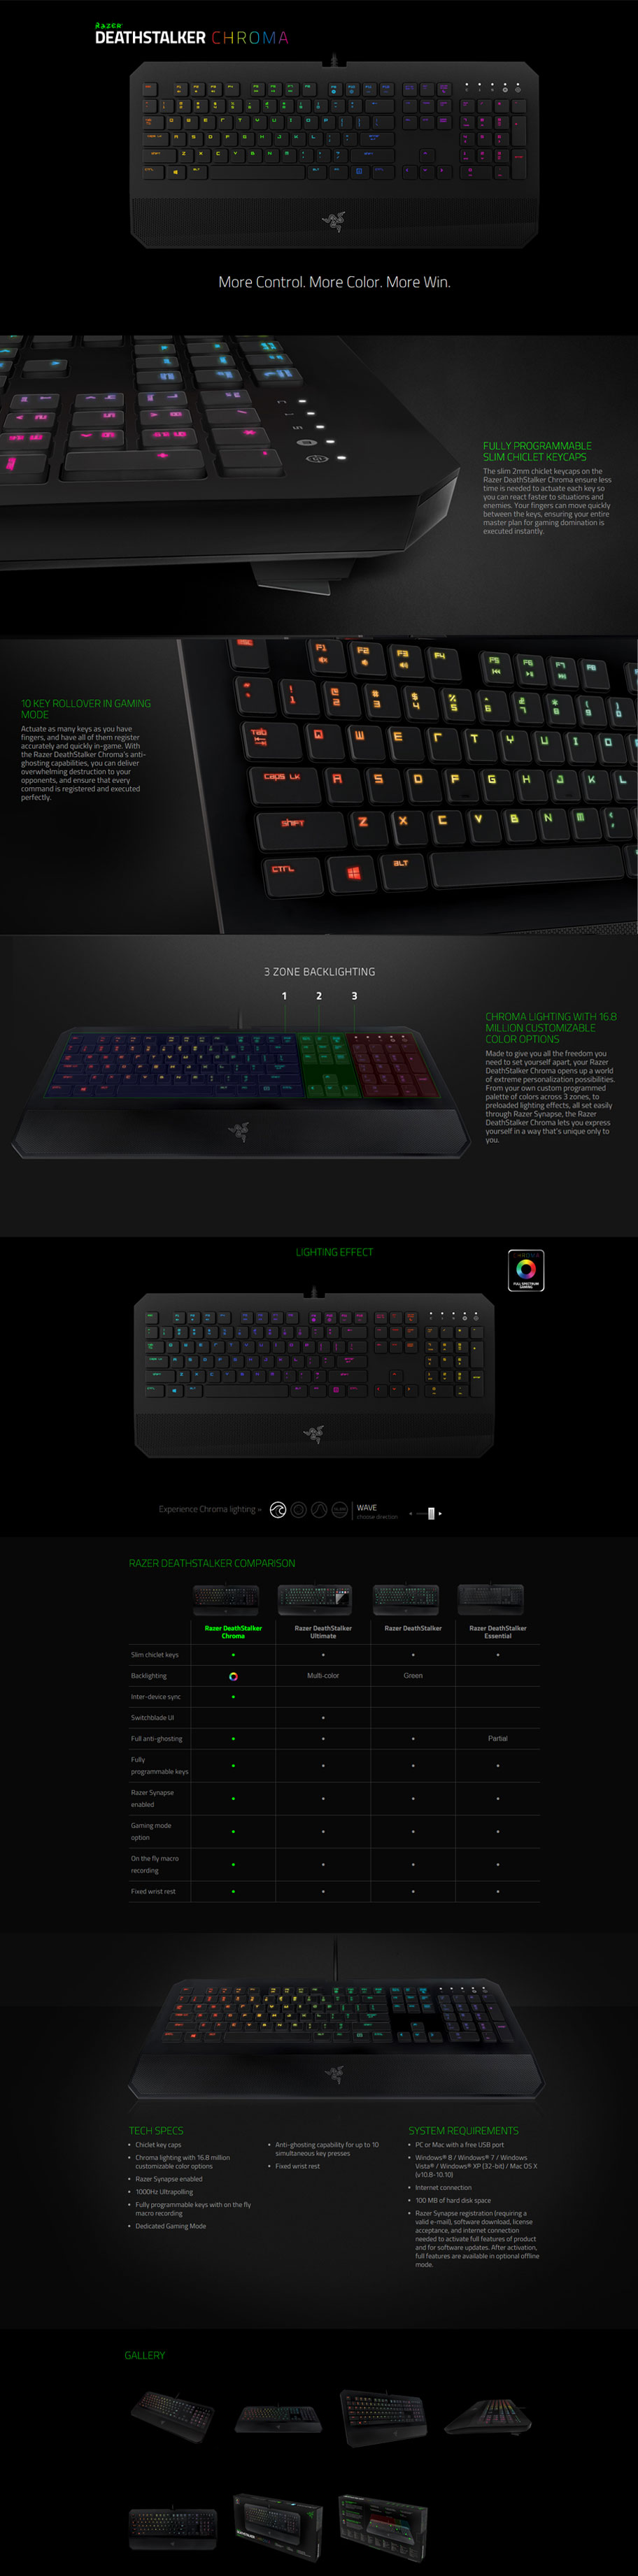 Razer Deathstalker Chroma Gaming Keyboard RGB